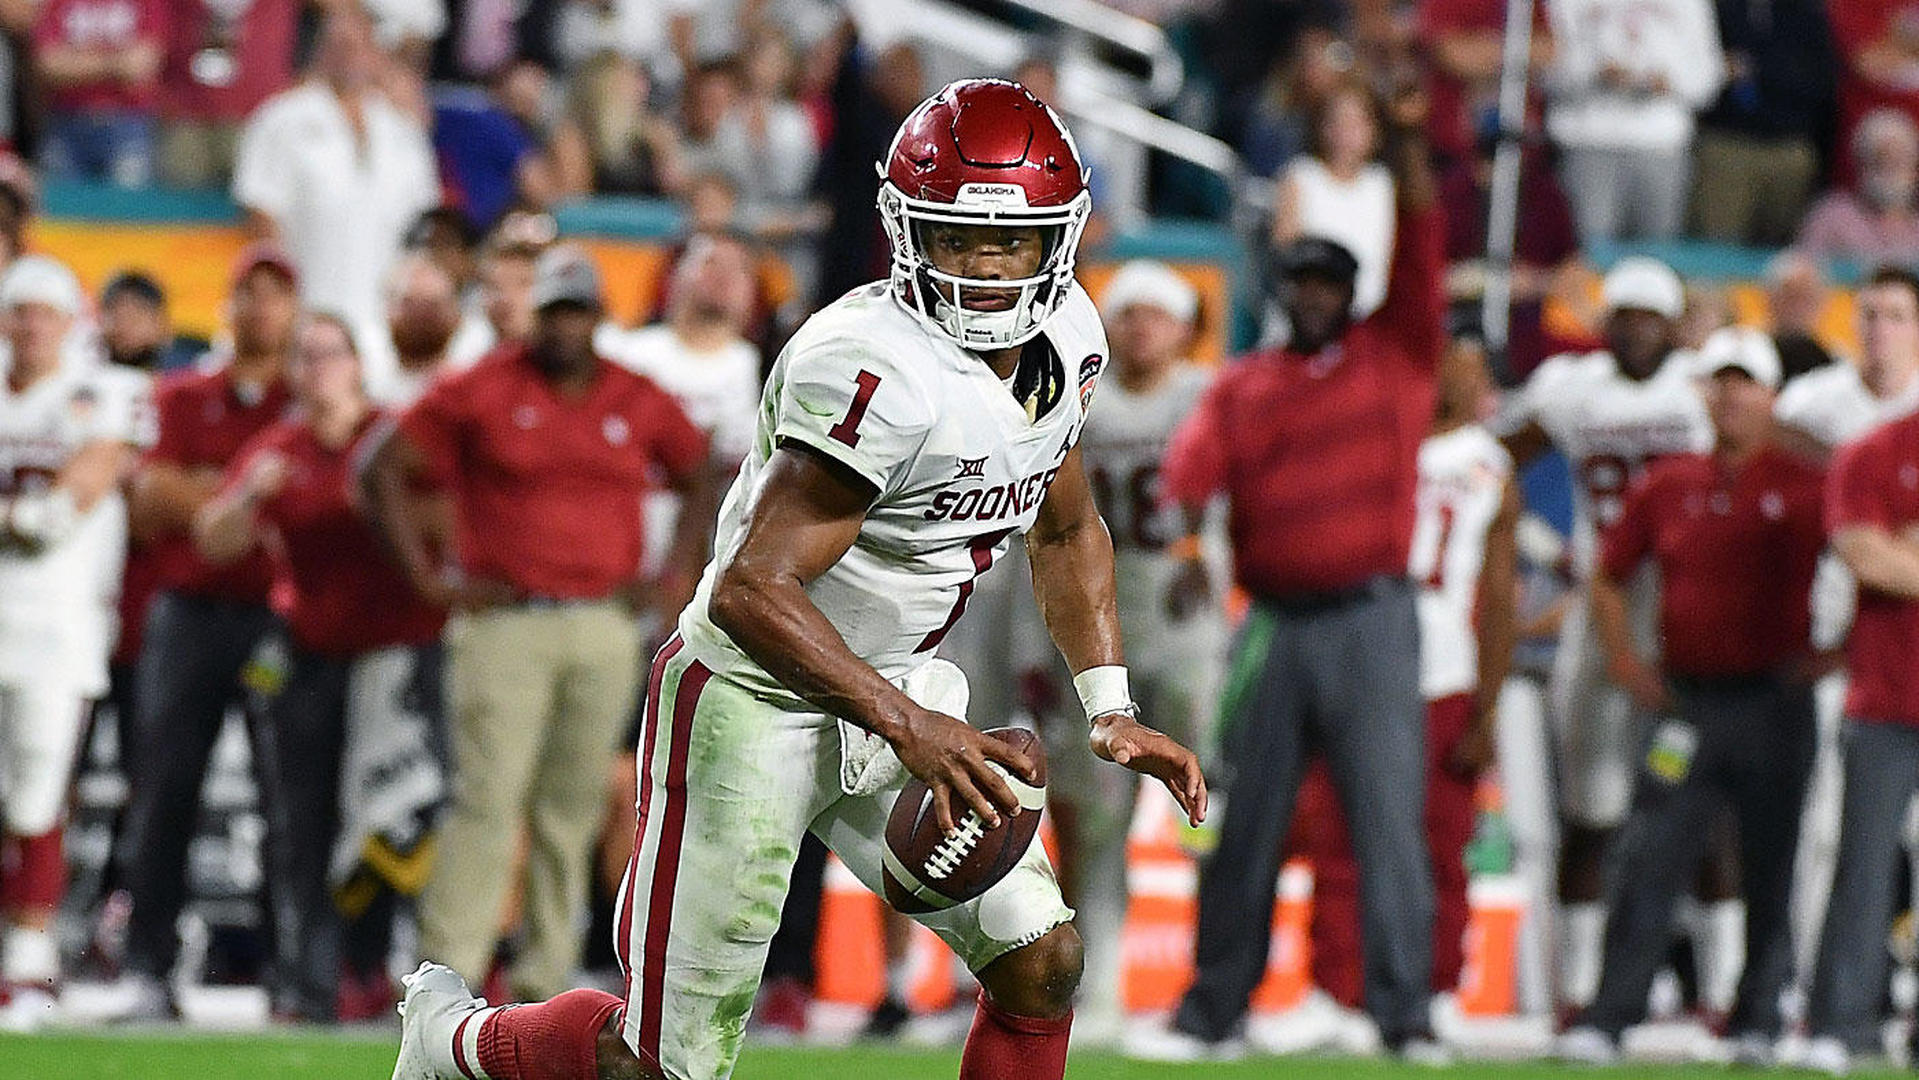 Kyler Murray potentially not throwing at NFL Combine could be a polarizing decision